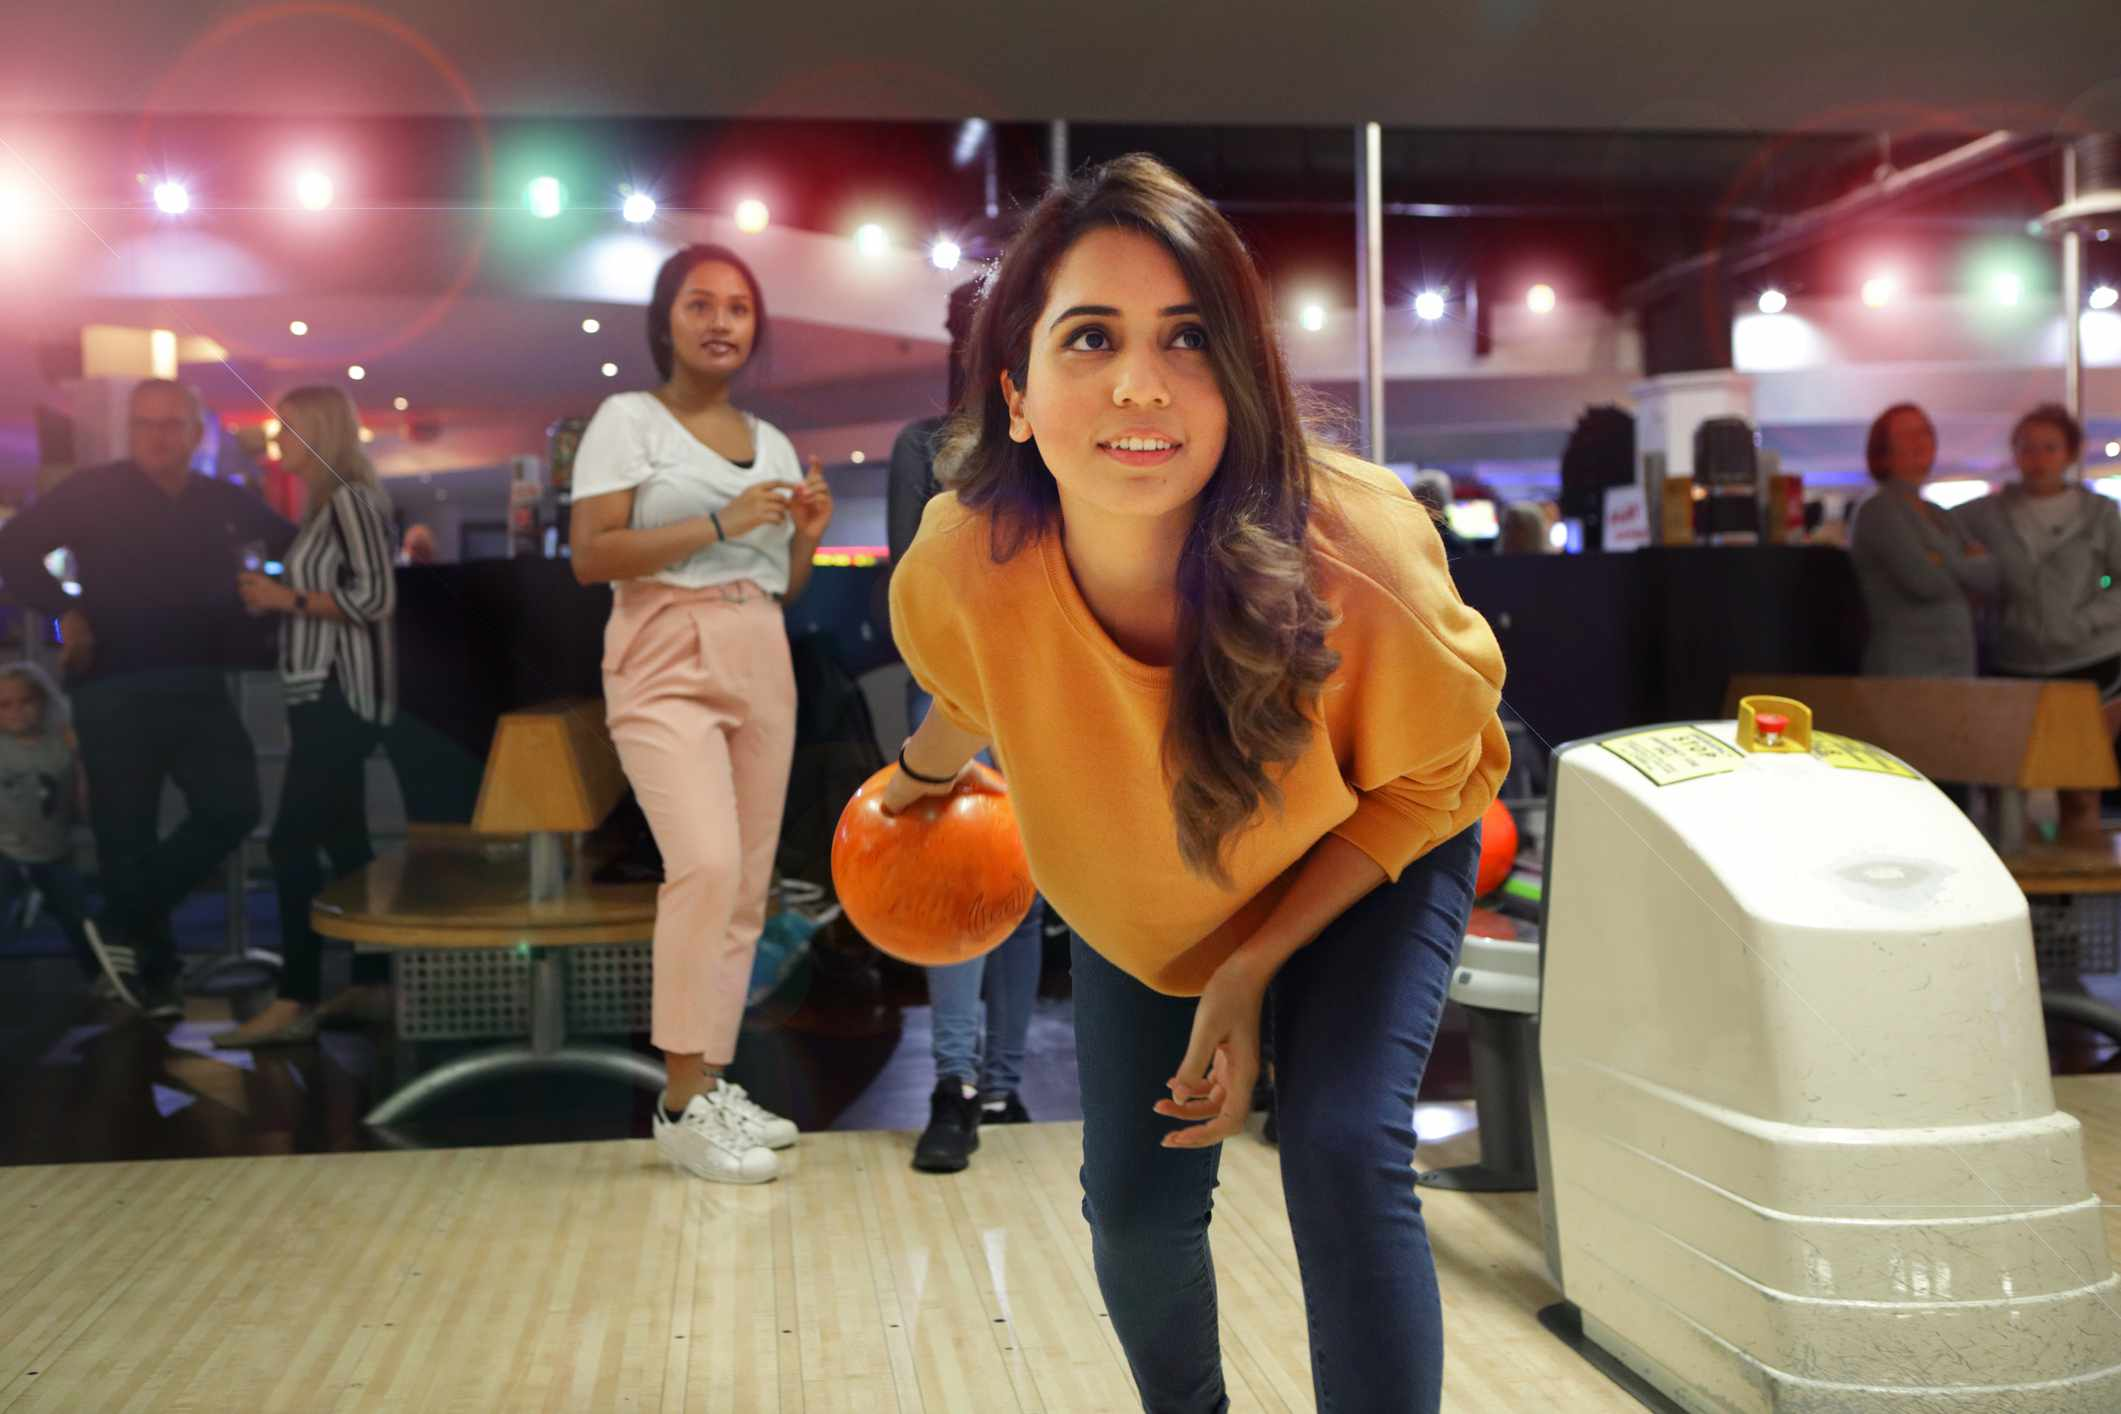 Young people in bowling alley